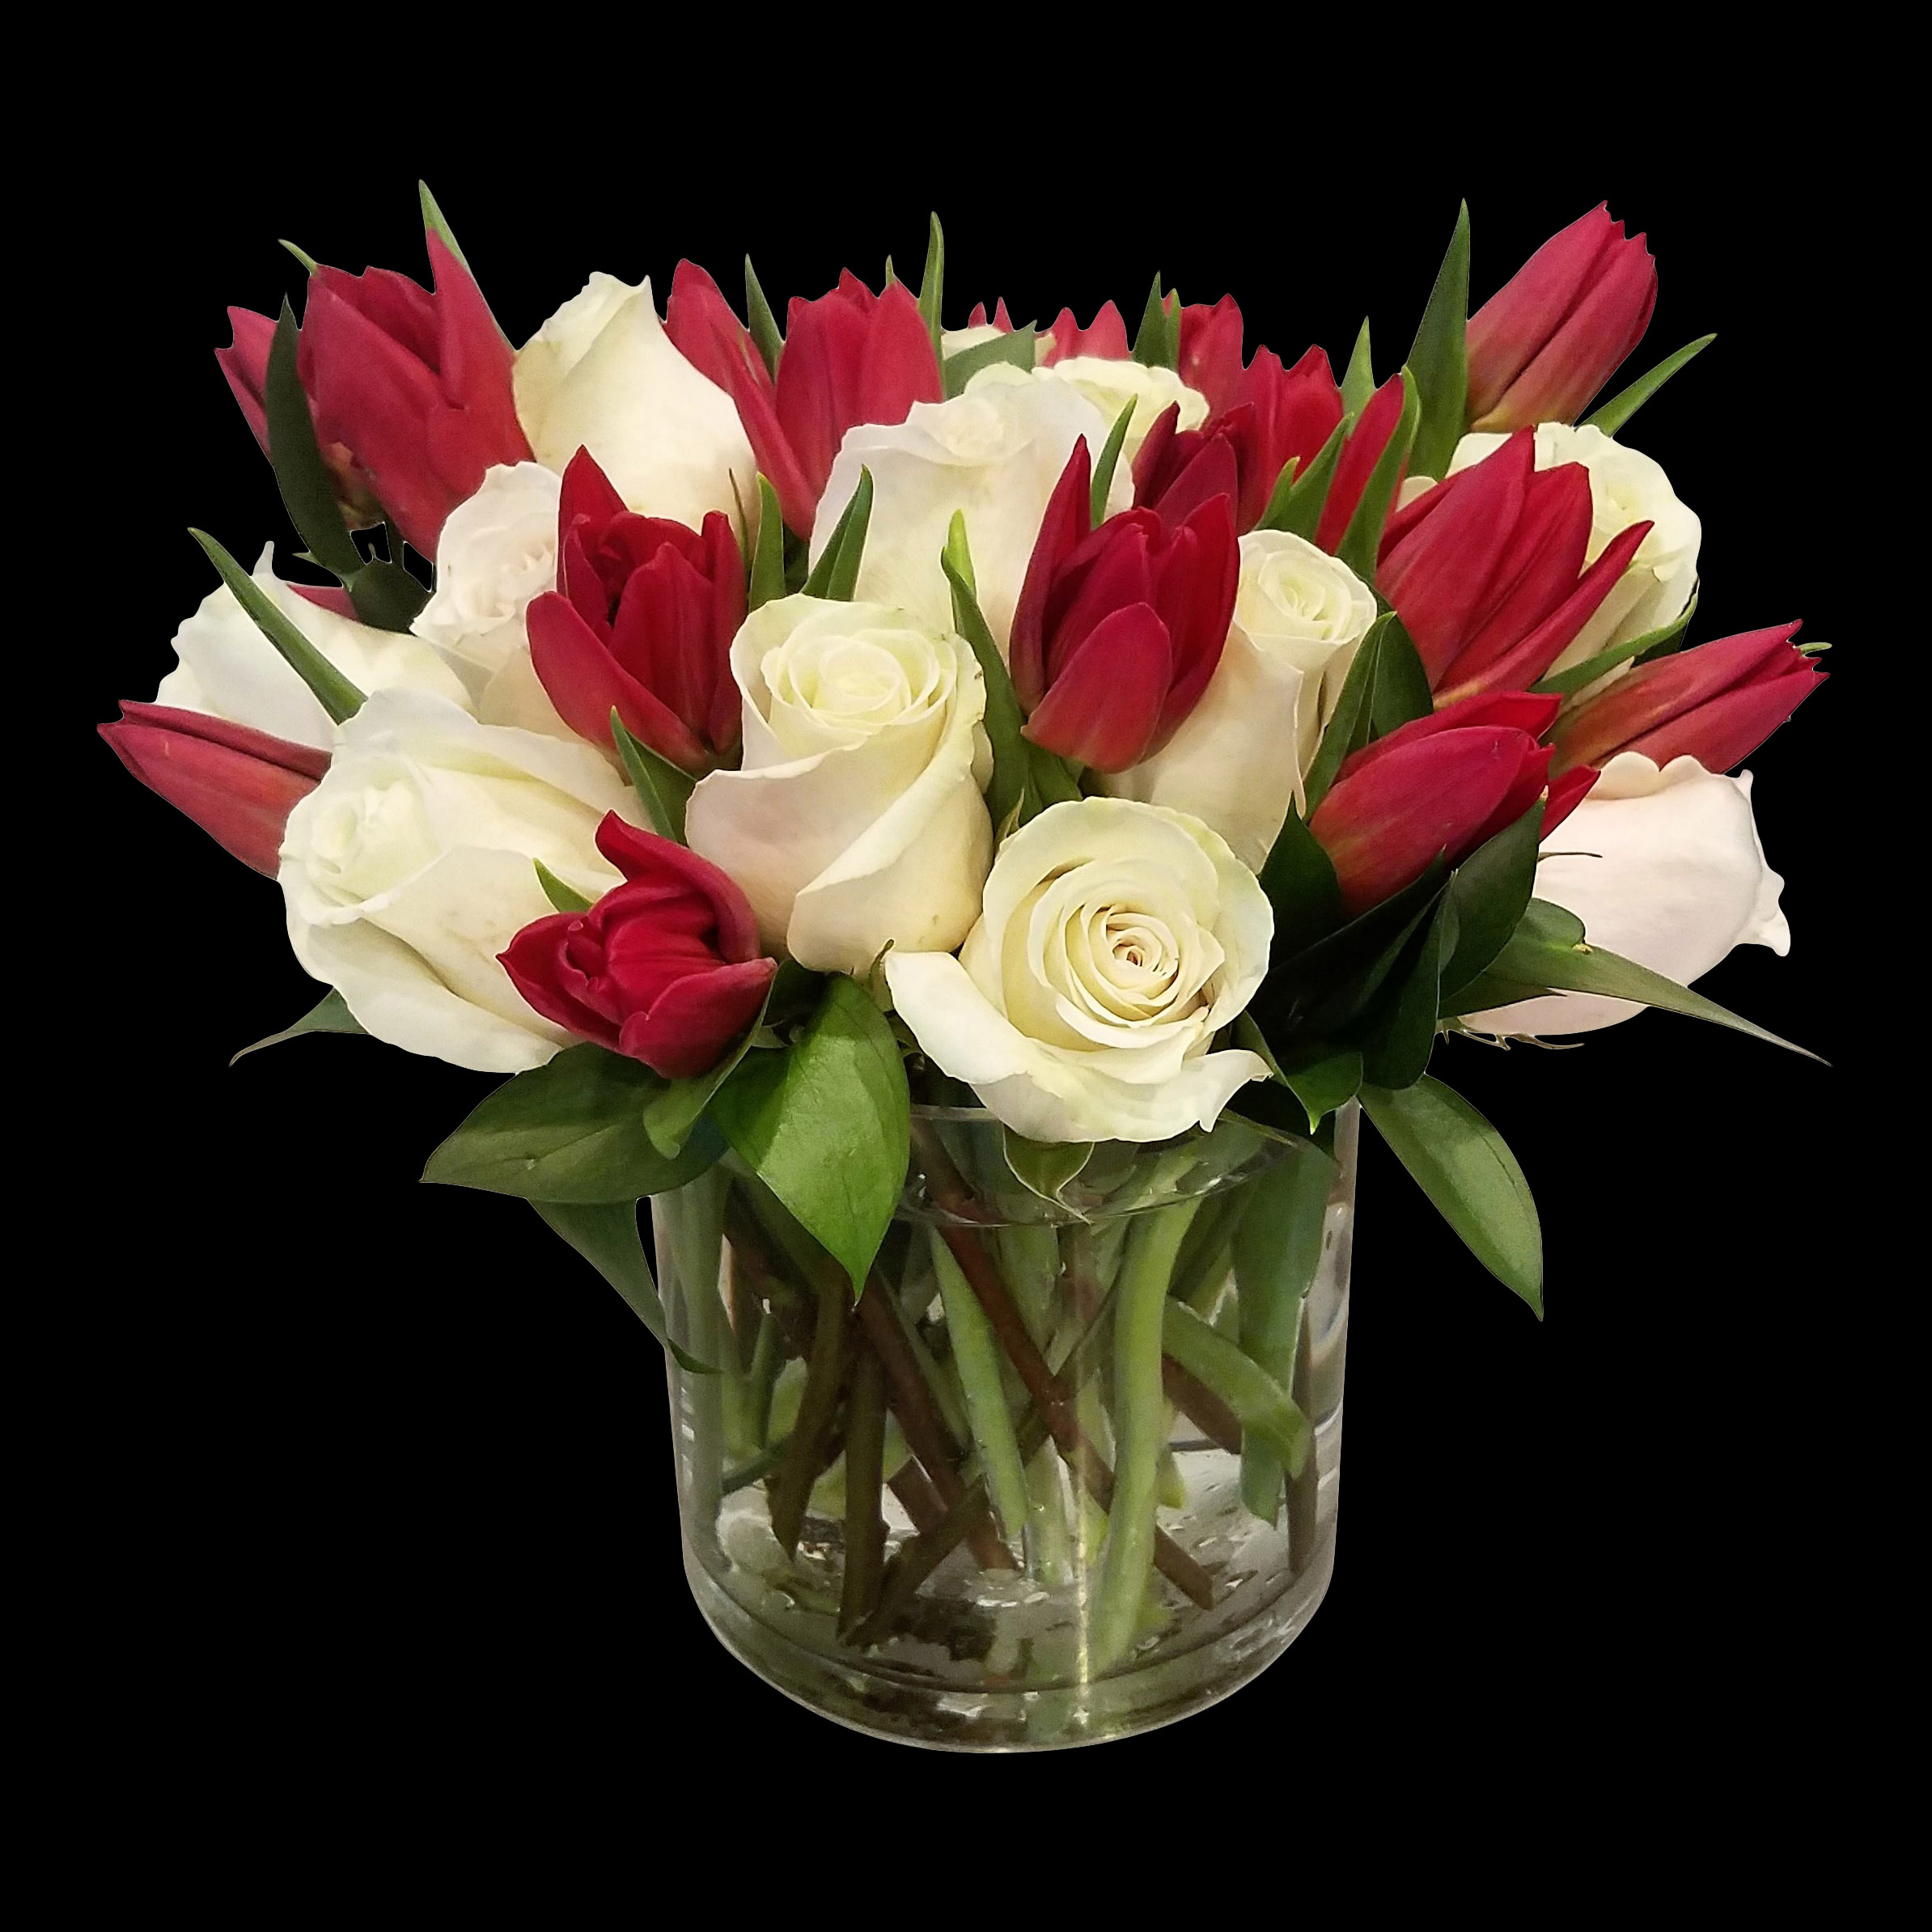 White Roses And Red Tulips The Flower Shop